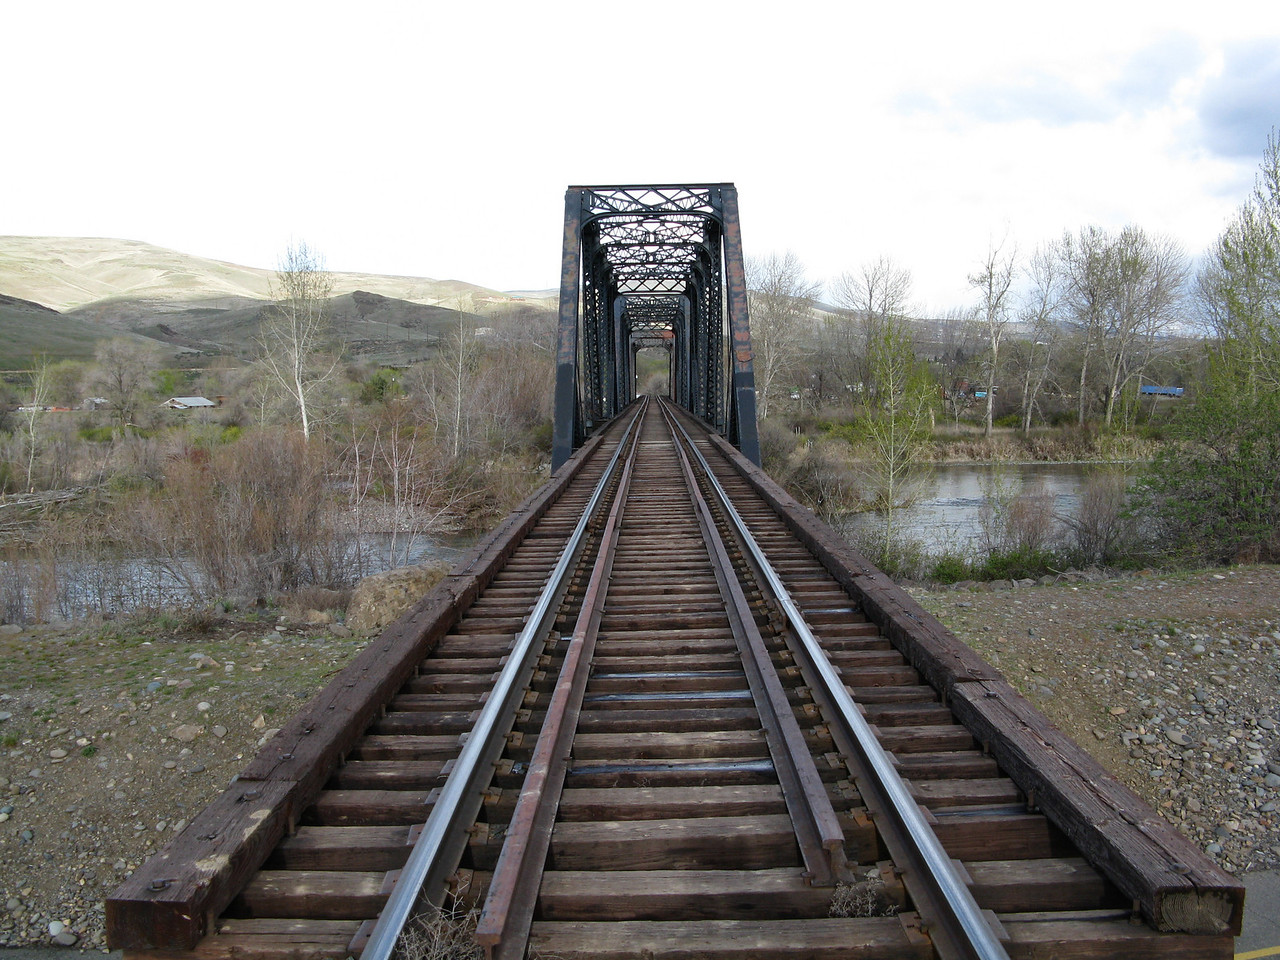 Looking east where the tracks cross the Yakima RIver on this old bridge.